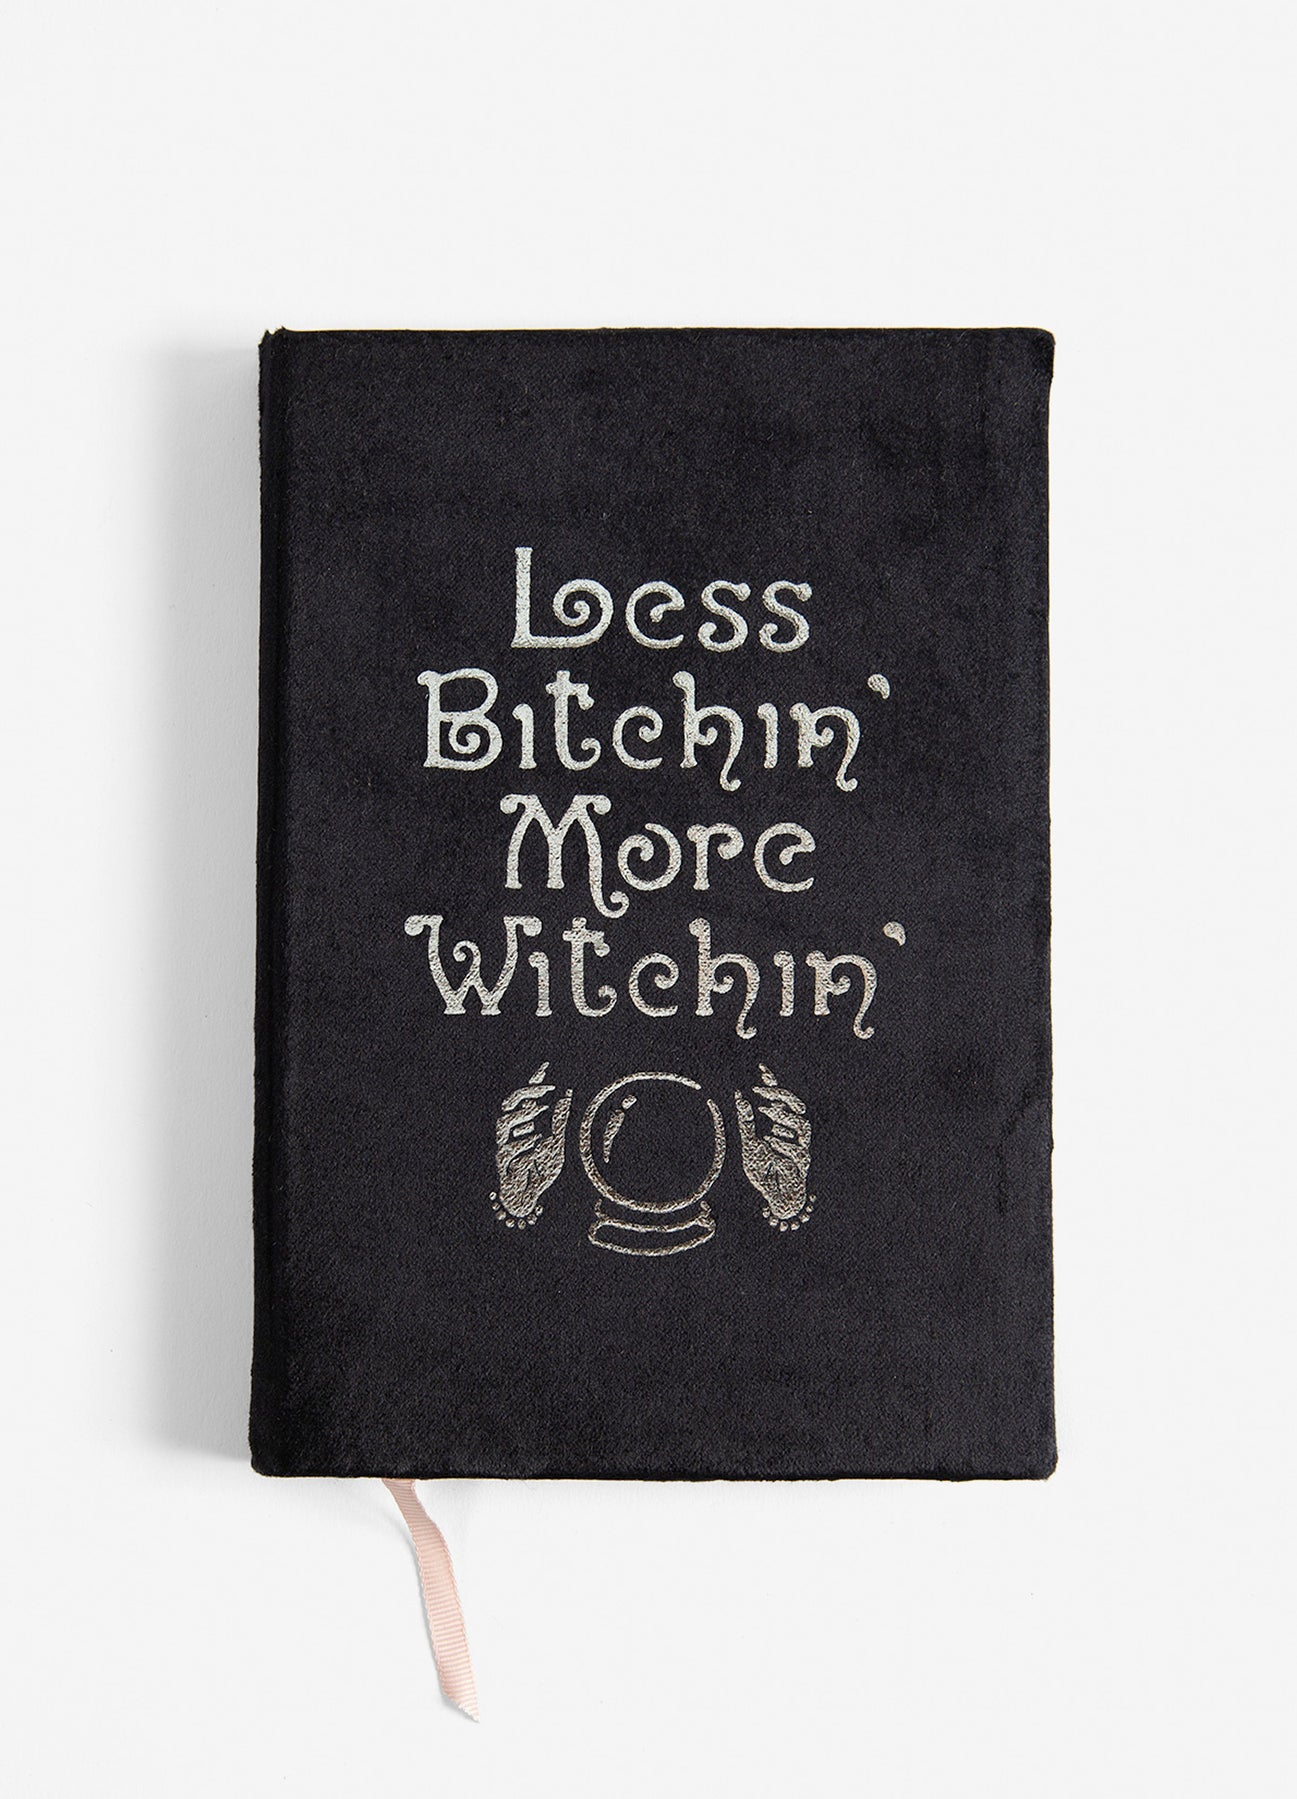 Less Bitchin' More Witchin' - Slim Velvet Journal - Black